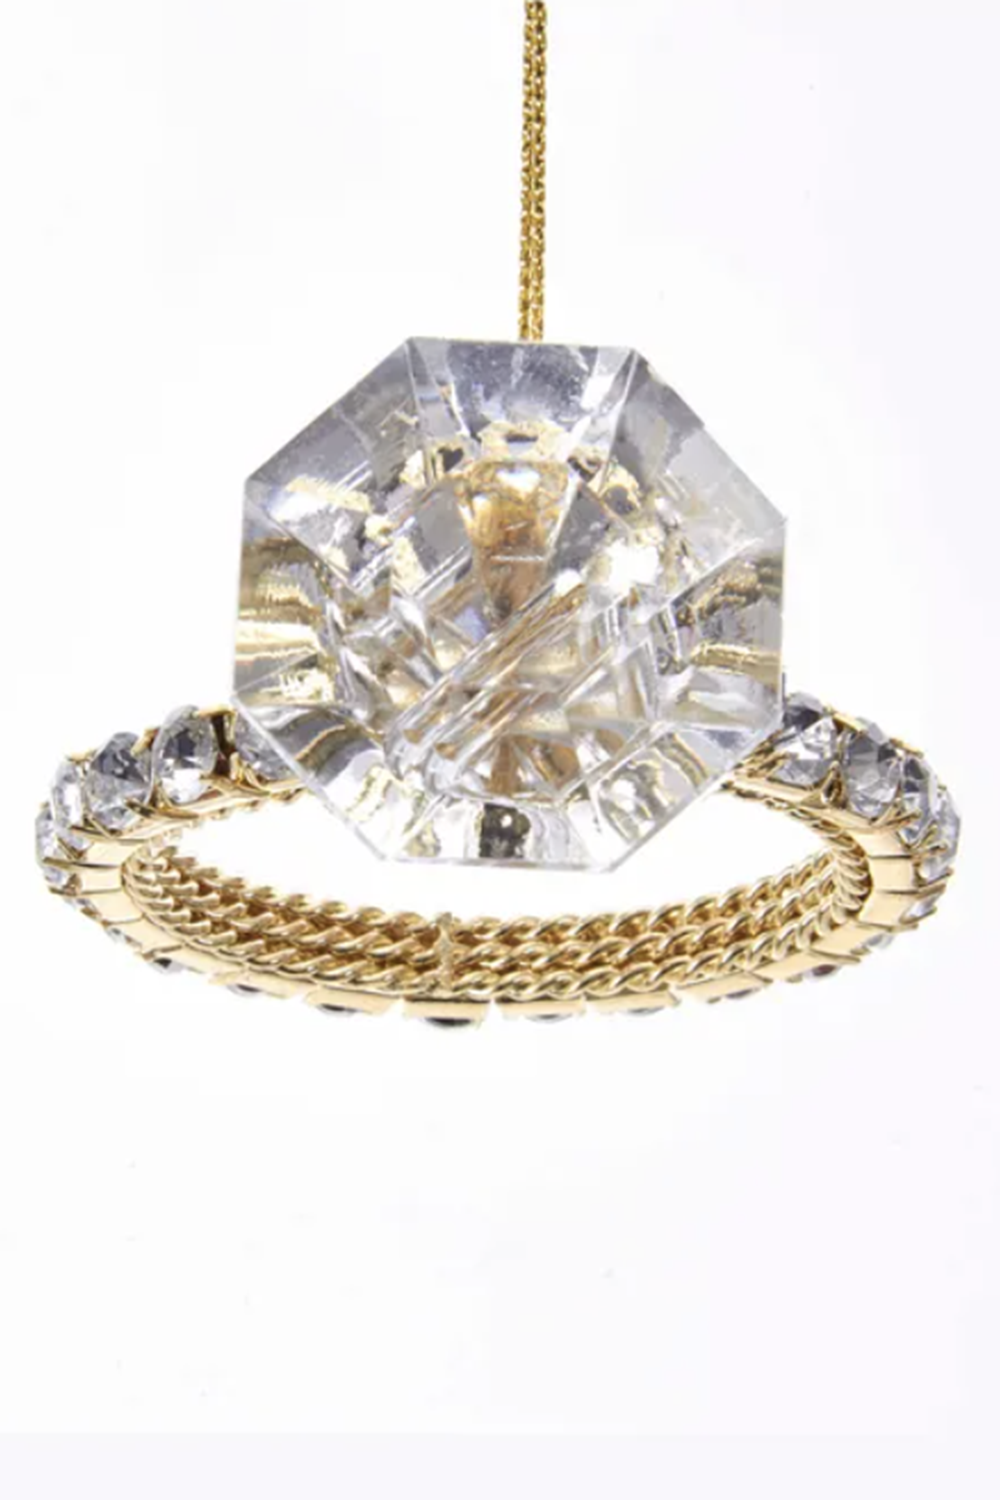 Fancy Ornament - Diamond Ring